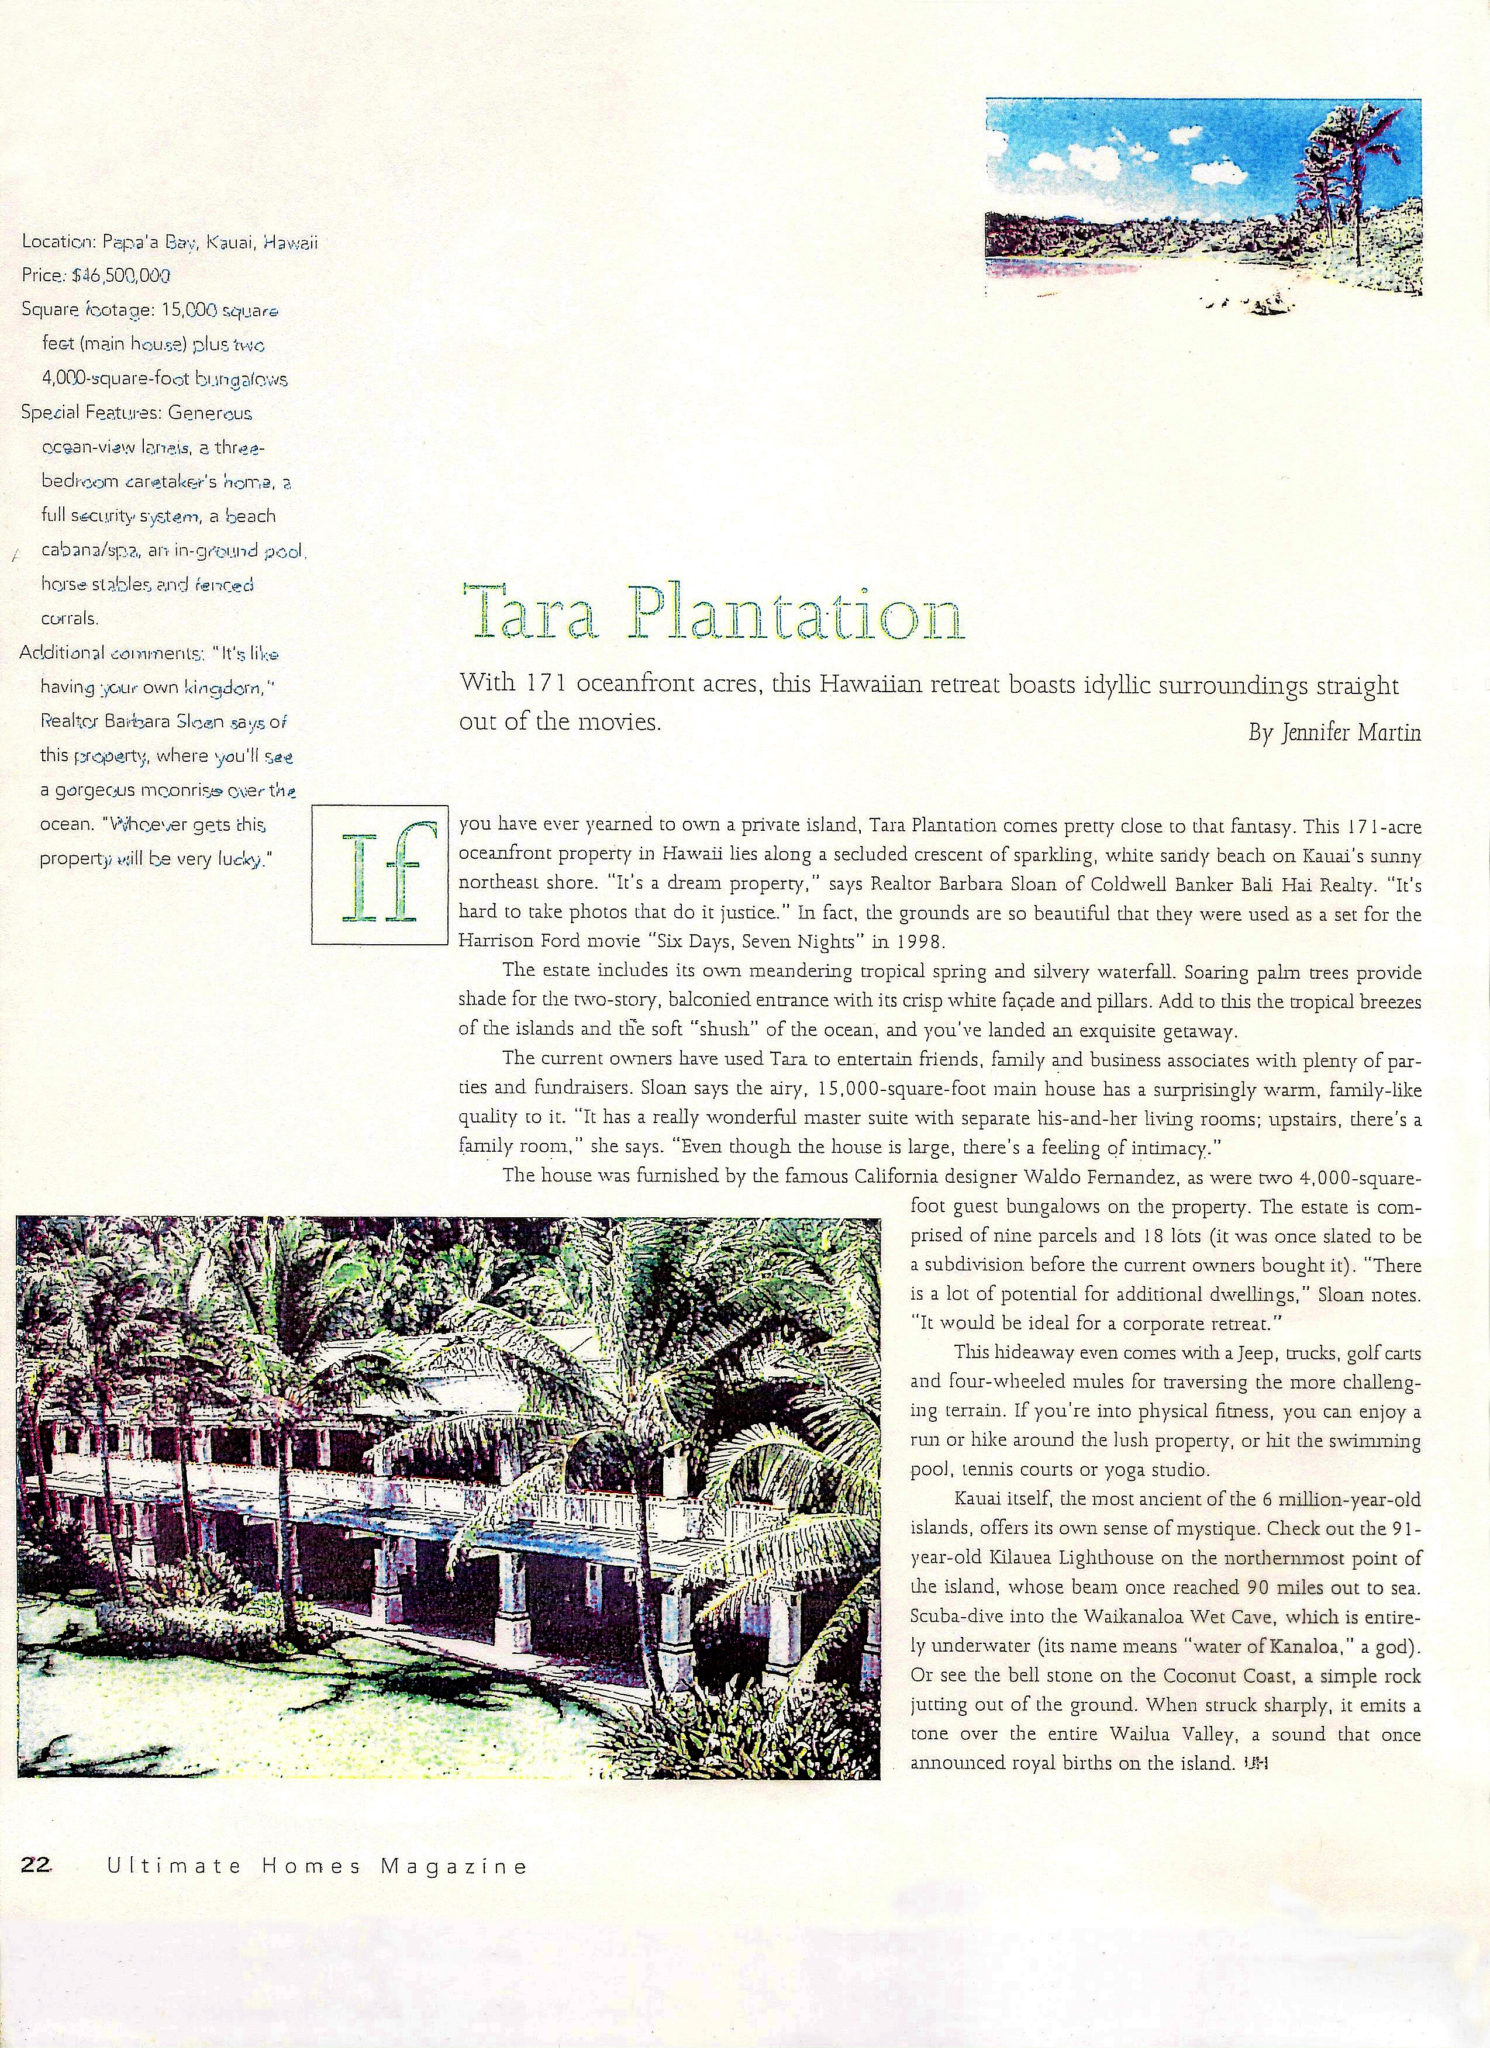 Trigg Smith Tara Plantation Brochure-Ultimate Homes-Page 1